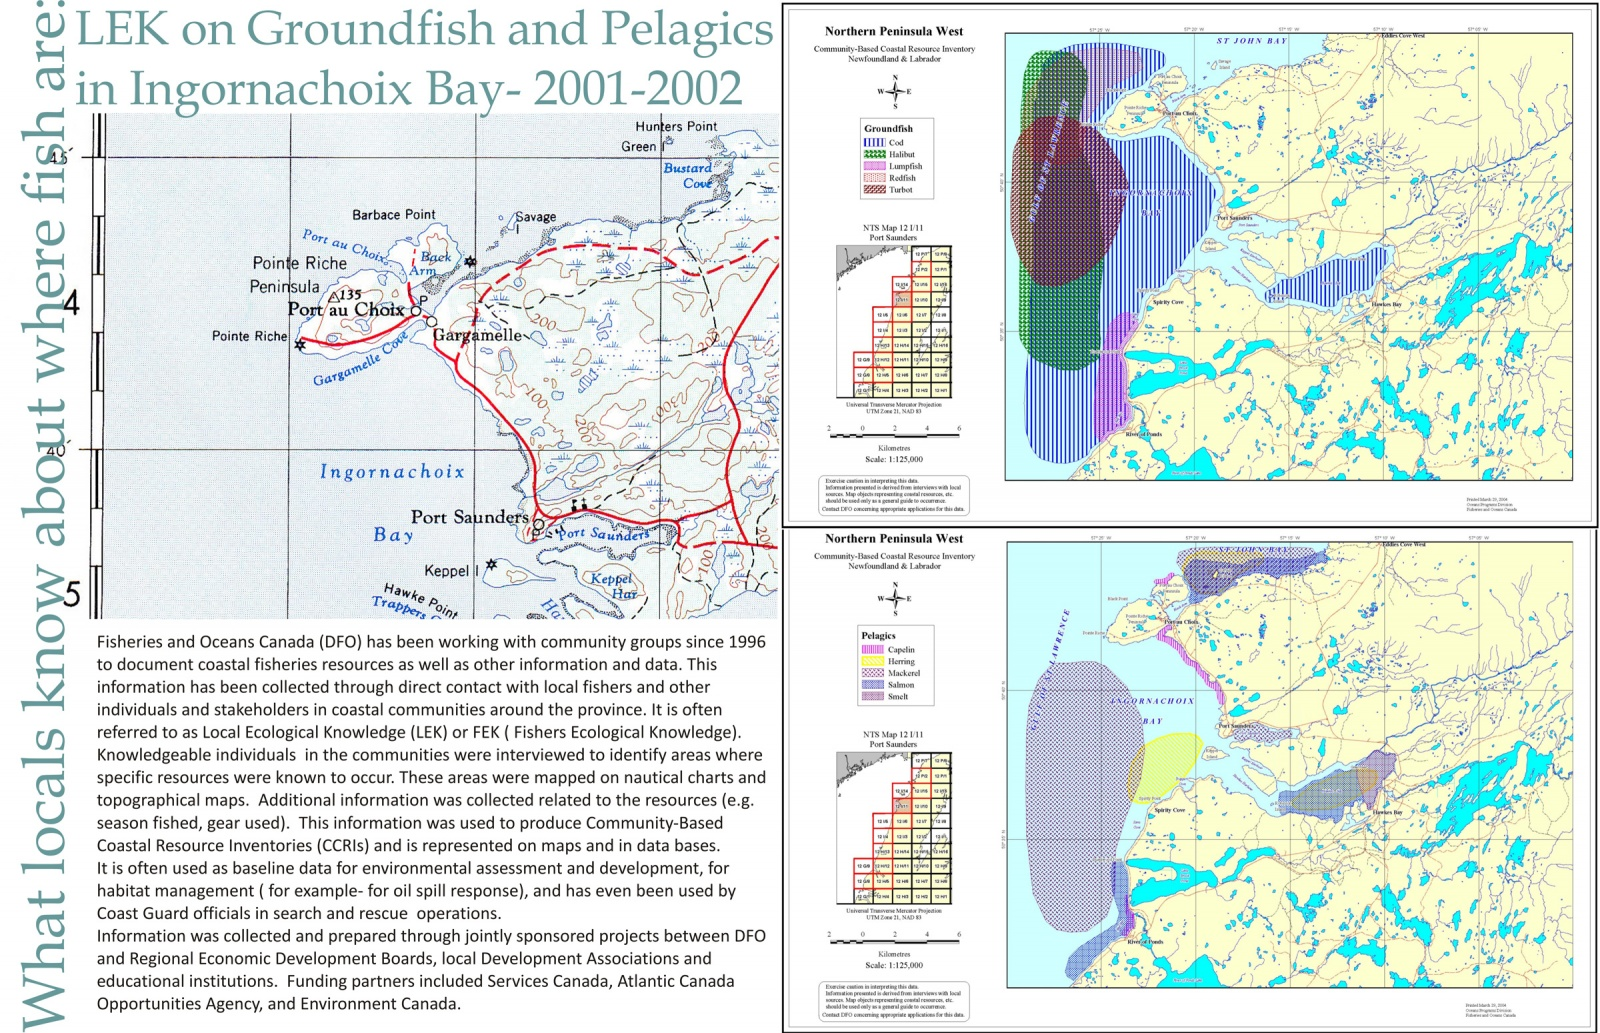 LEK on Groundfish and Pelagics in Ingornachoix Bay- 2001-2002